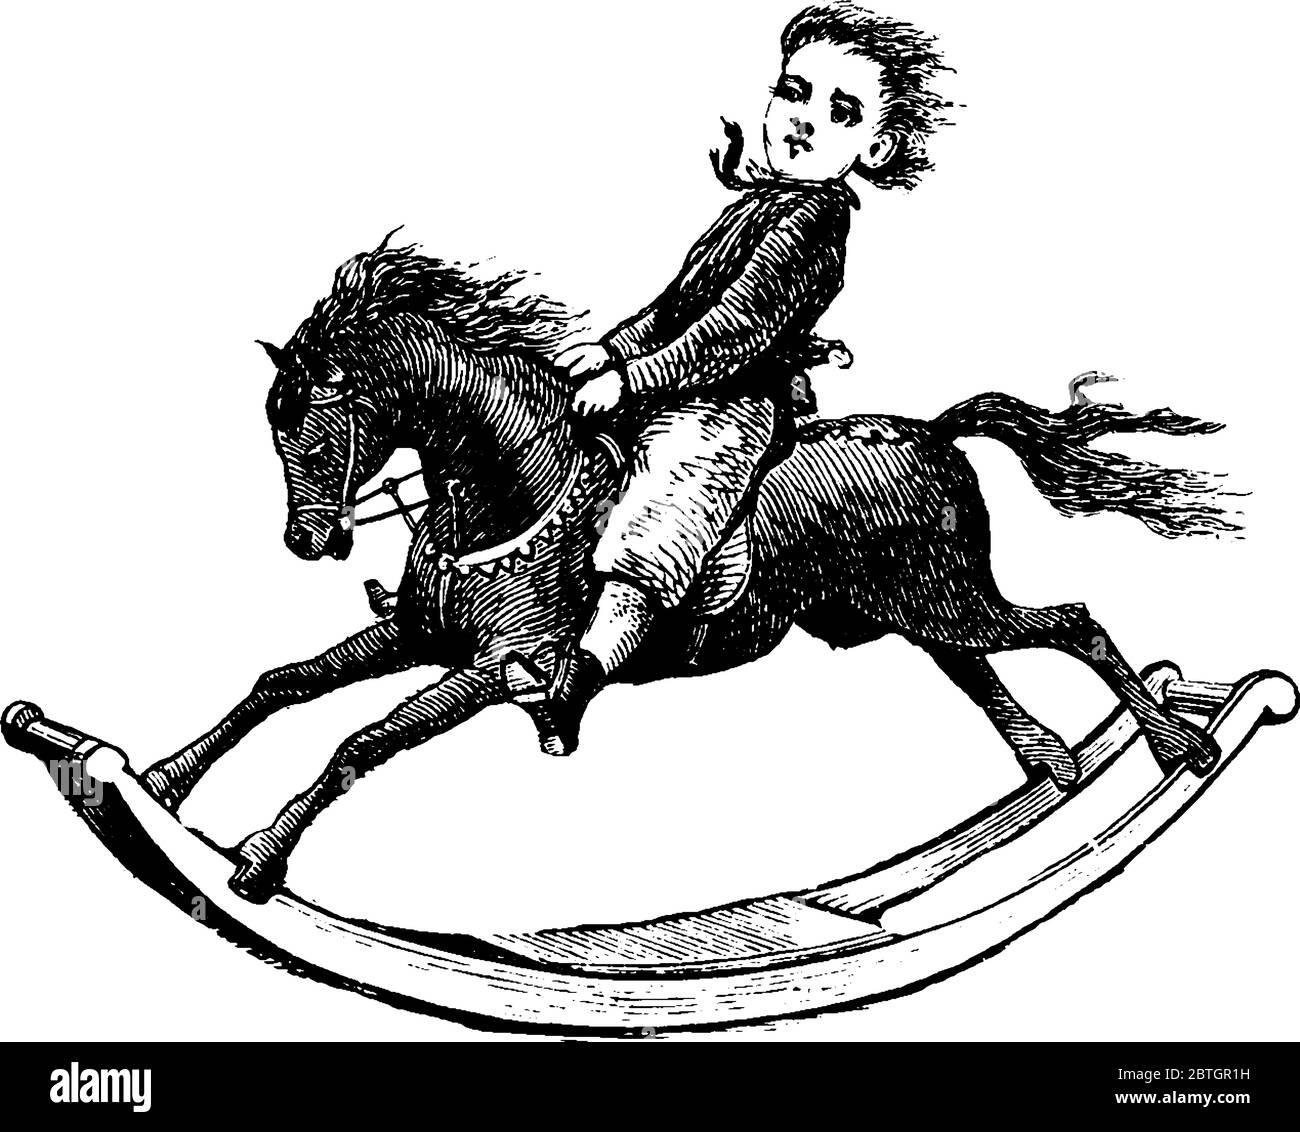 A Little Boy Riding On Toy Rocking Horse And Enjoying Like Real Horse Ride Vintage Line Drawing Or Engraving Illustration Stock Vector Image Art Alamy